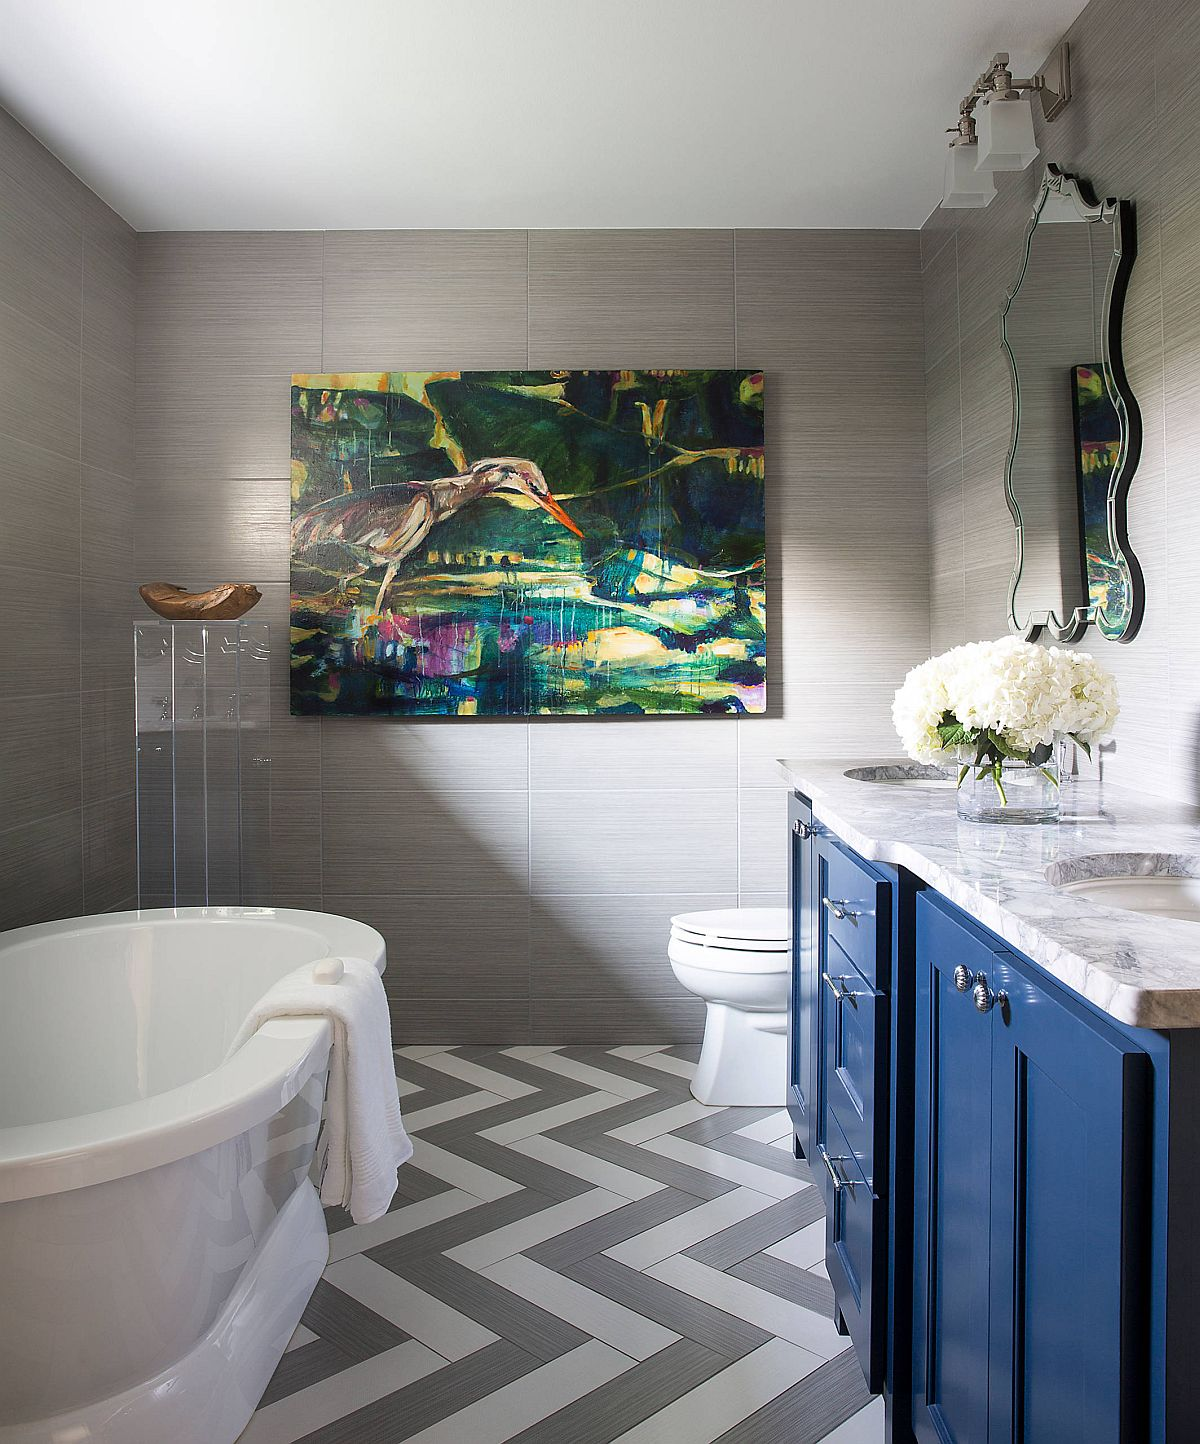 Chevron pattern floor in white and gray along wth blue vanity in the contemporary bathroom